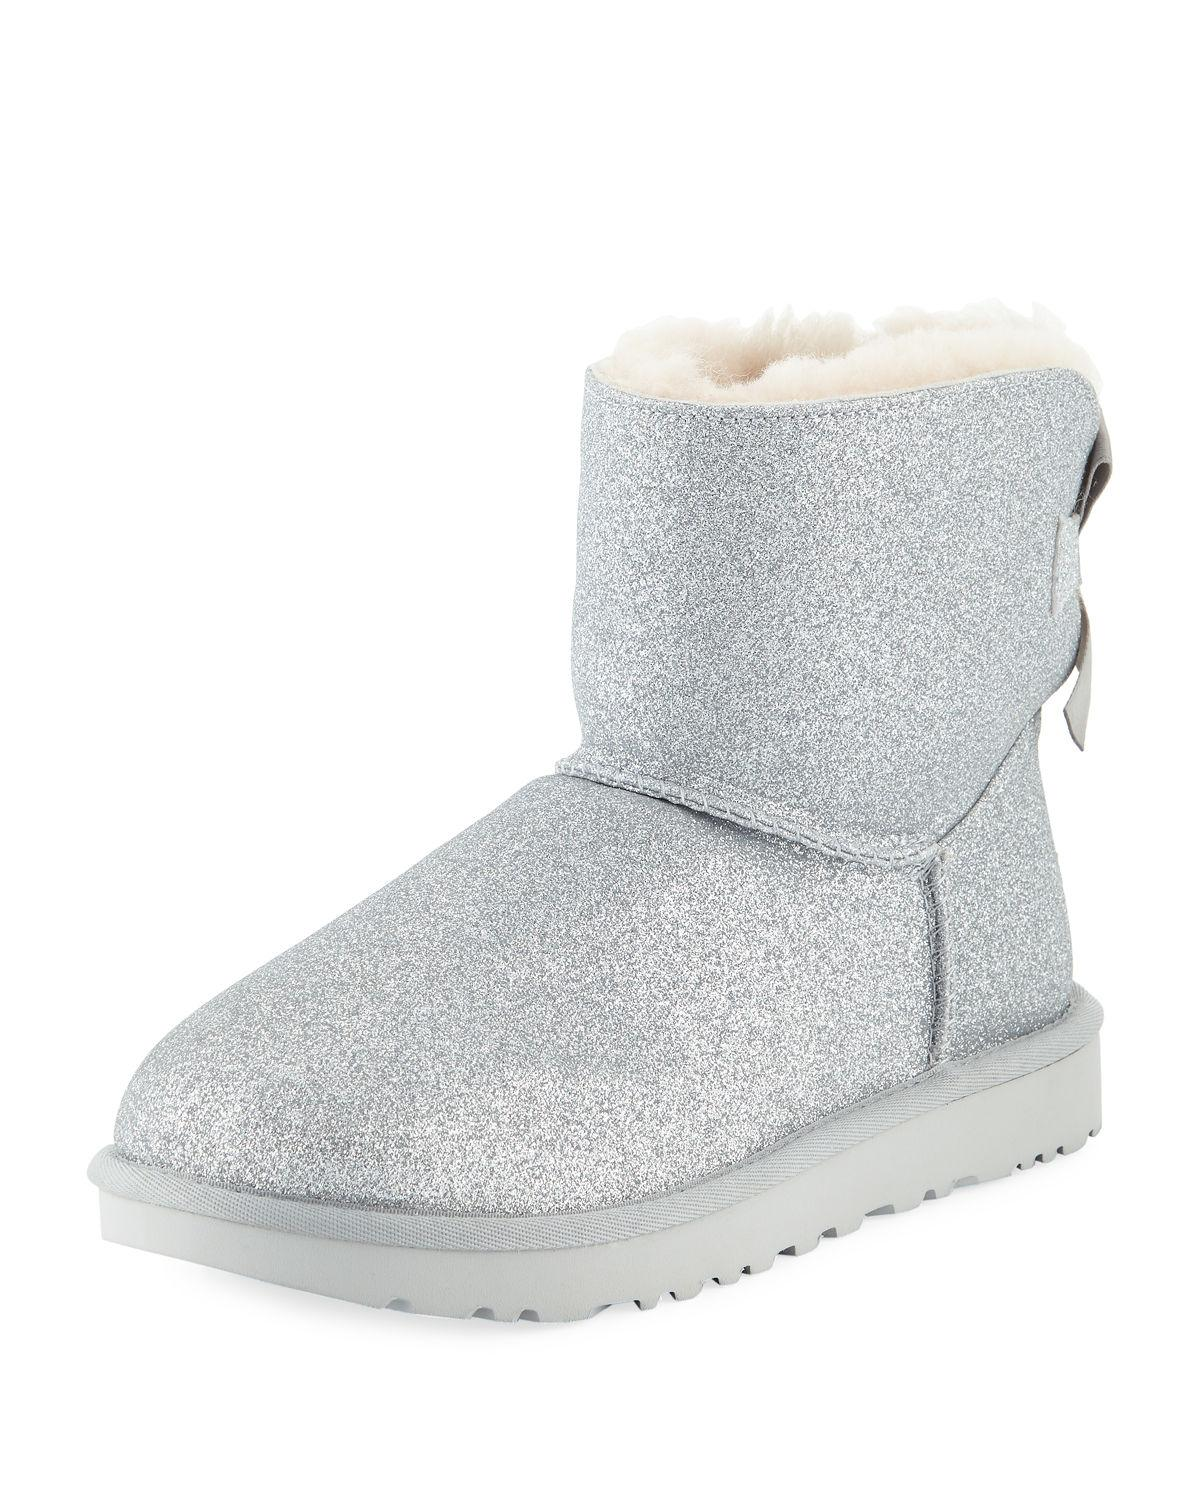 a166a247a08 MINI BAILEY BOW SPARKLE BOOTS